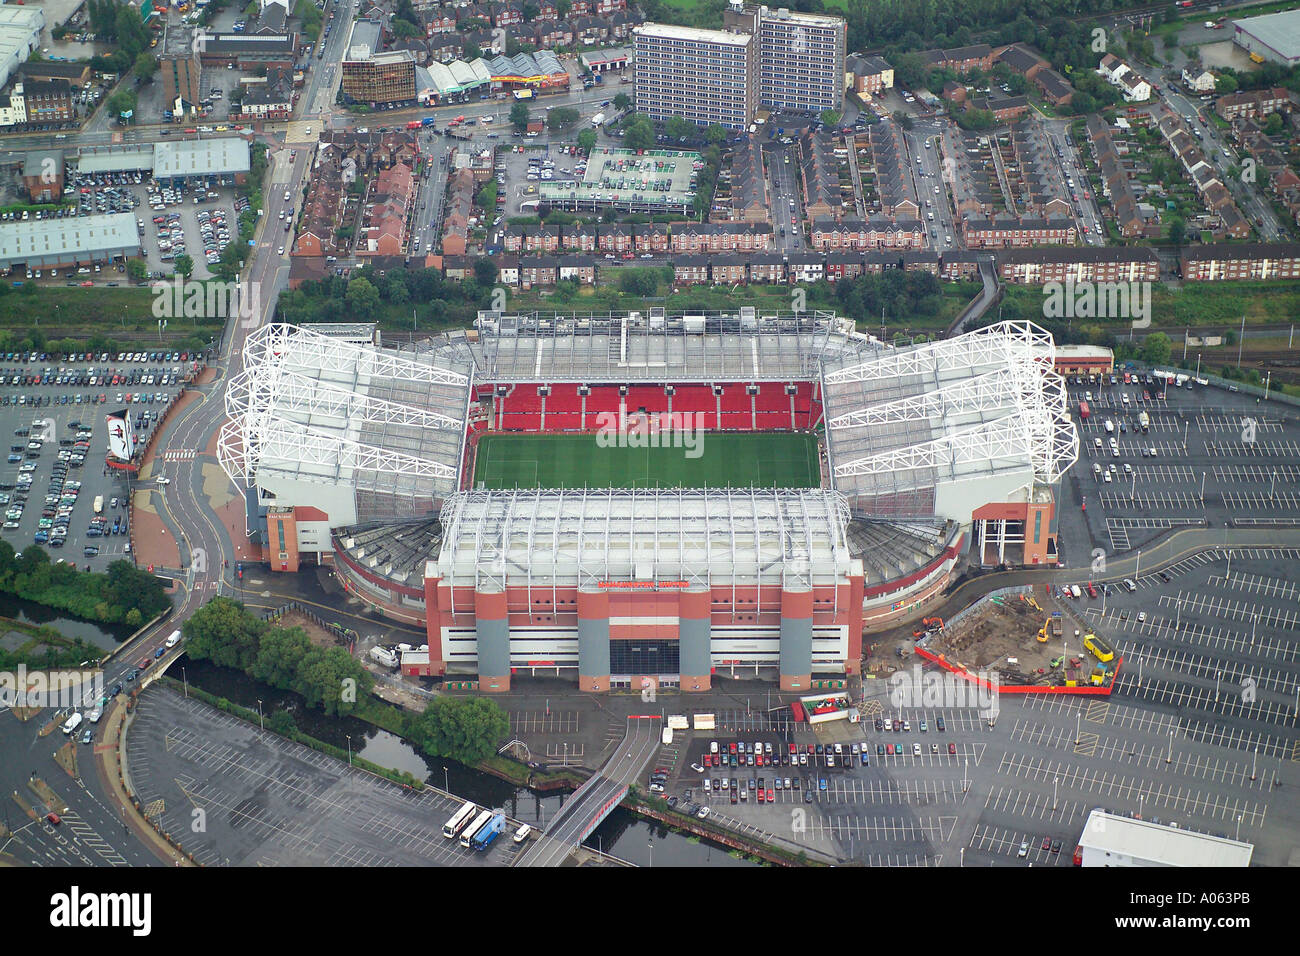 Aerial view of Manchester United Football Club, also known as Old Trafford, home to the Red Devils, Man U, United - Stock Image